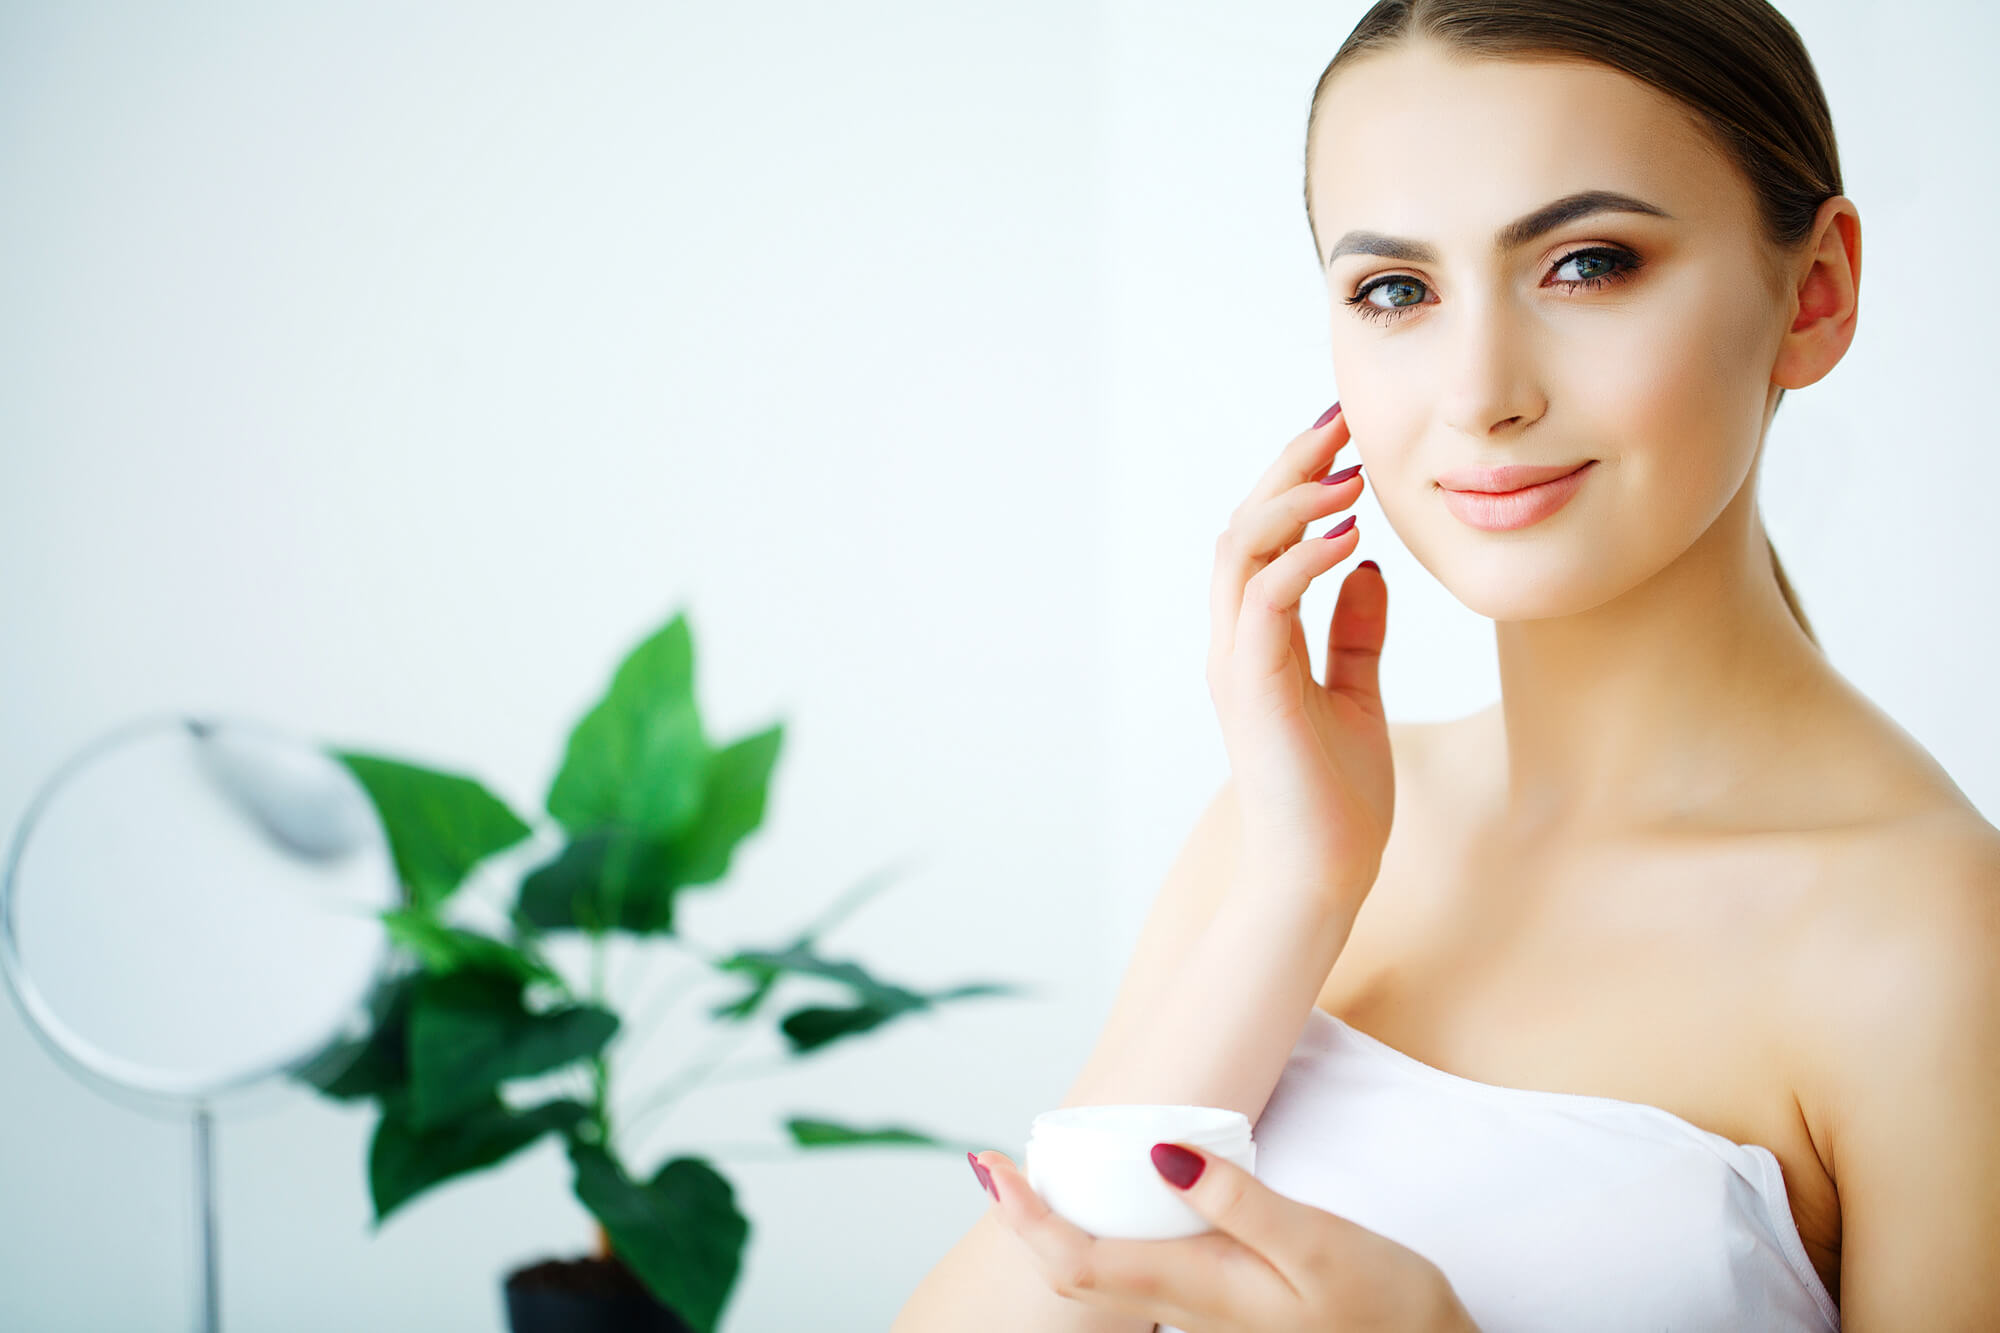 Woman smiling with skin cream jar and plant in background